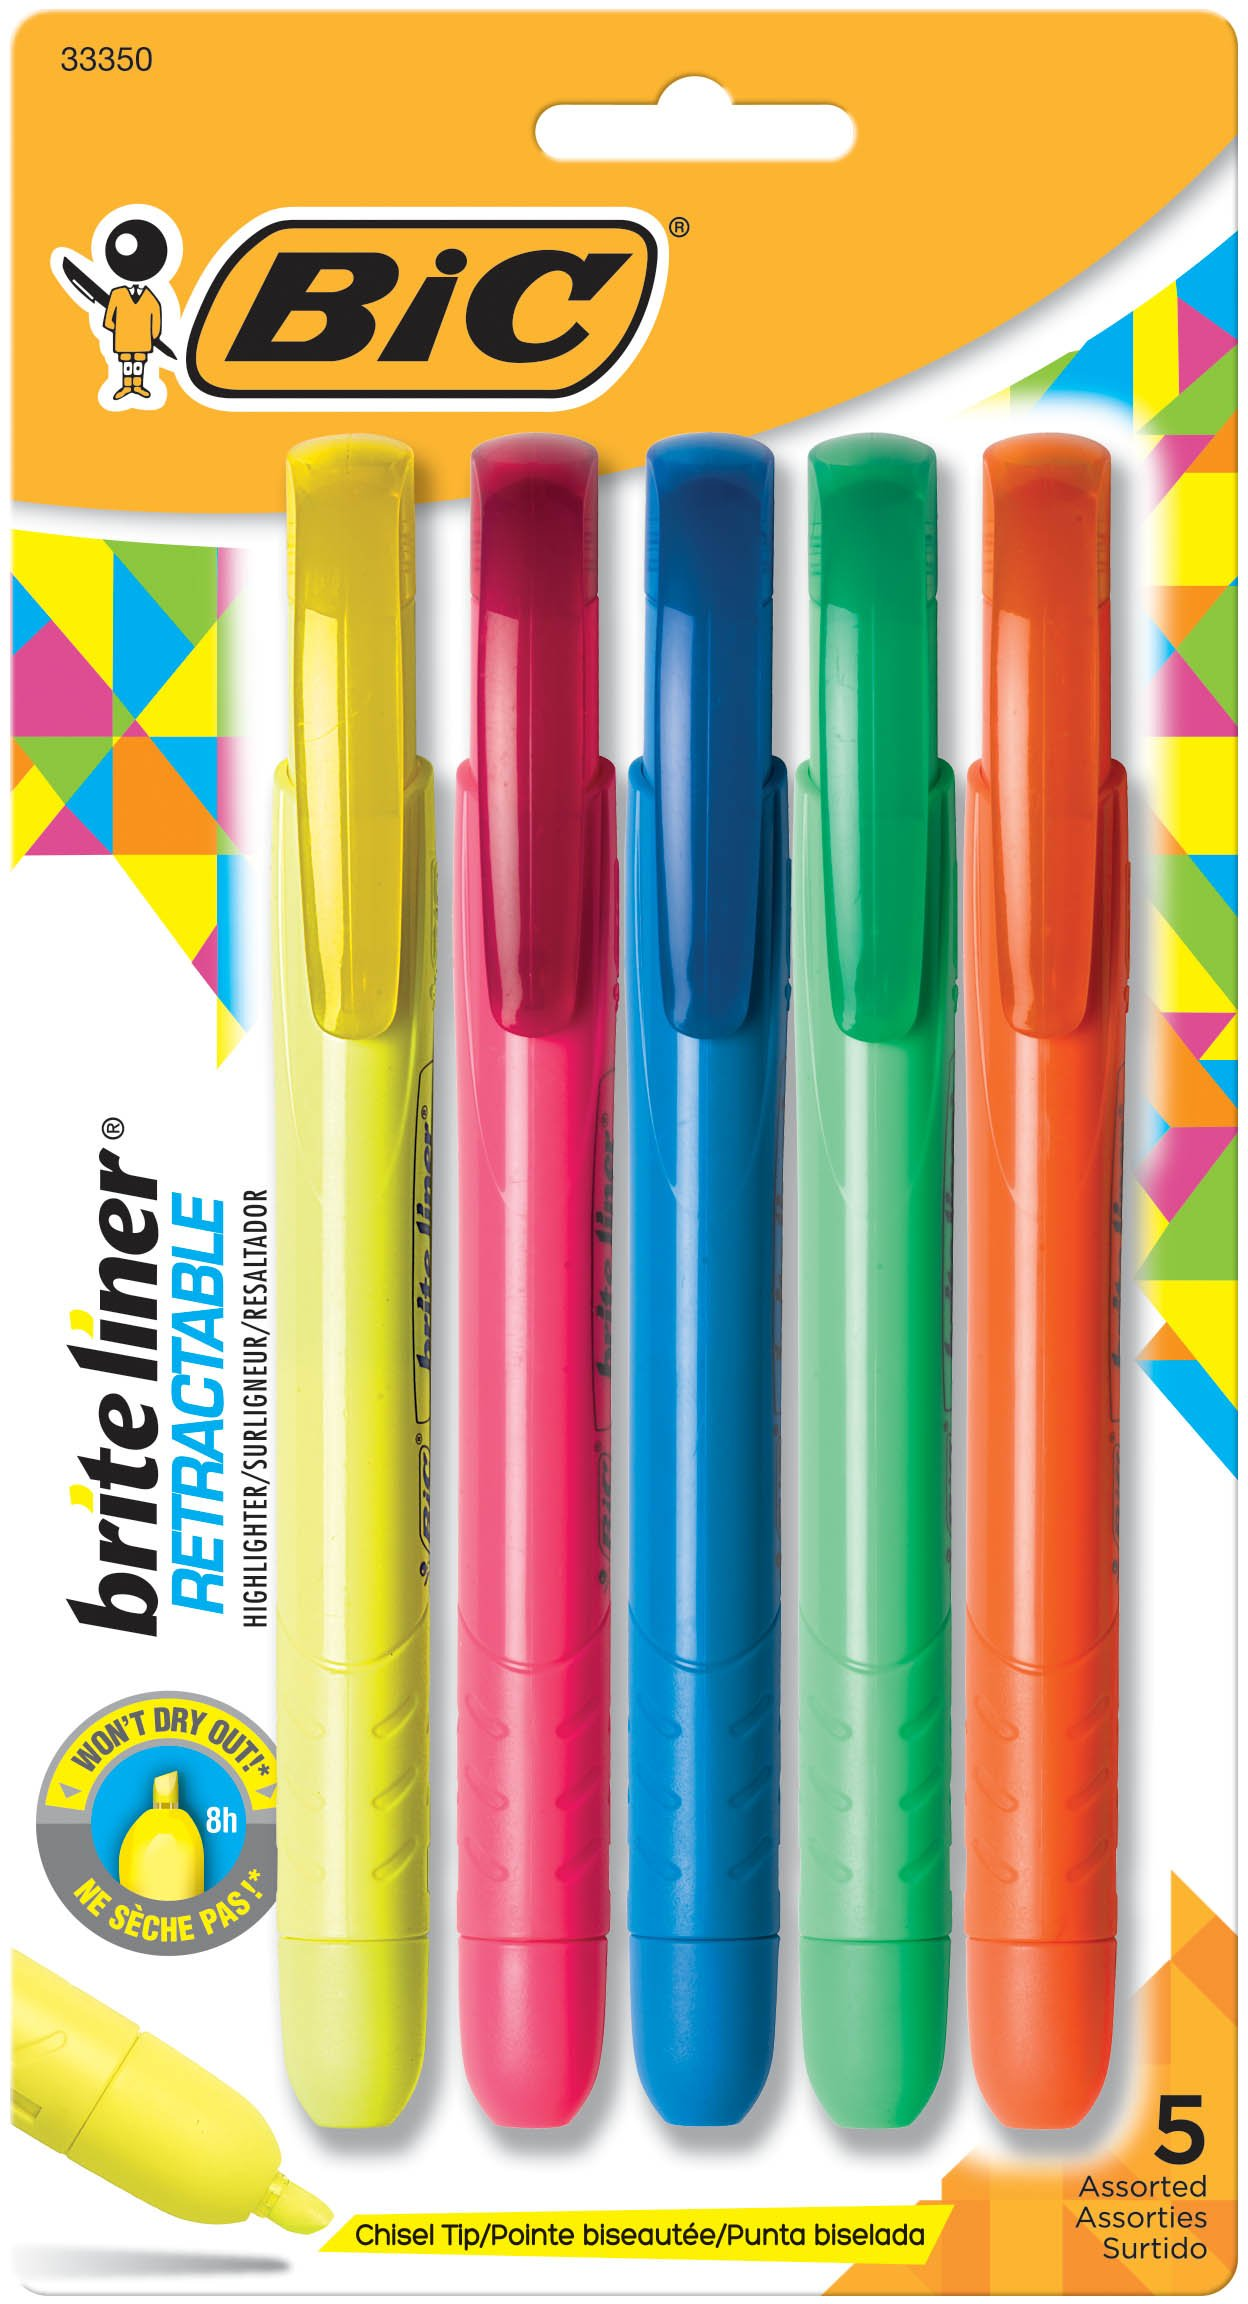 BIC Brite Liner Retractable Highlighter, Chisel Tip, Assorted Colors, 30-Count